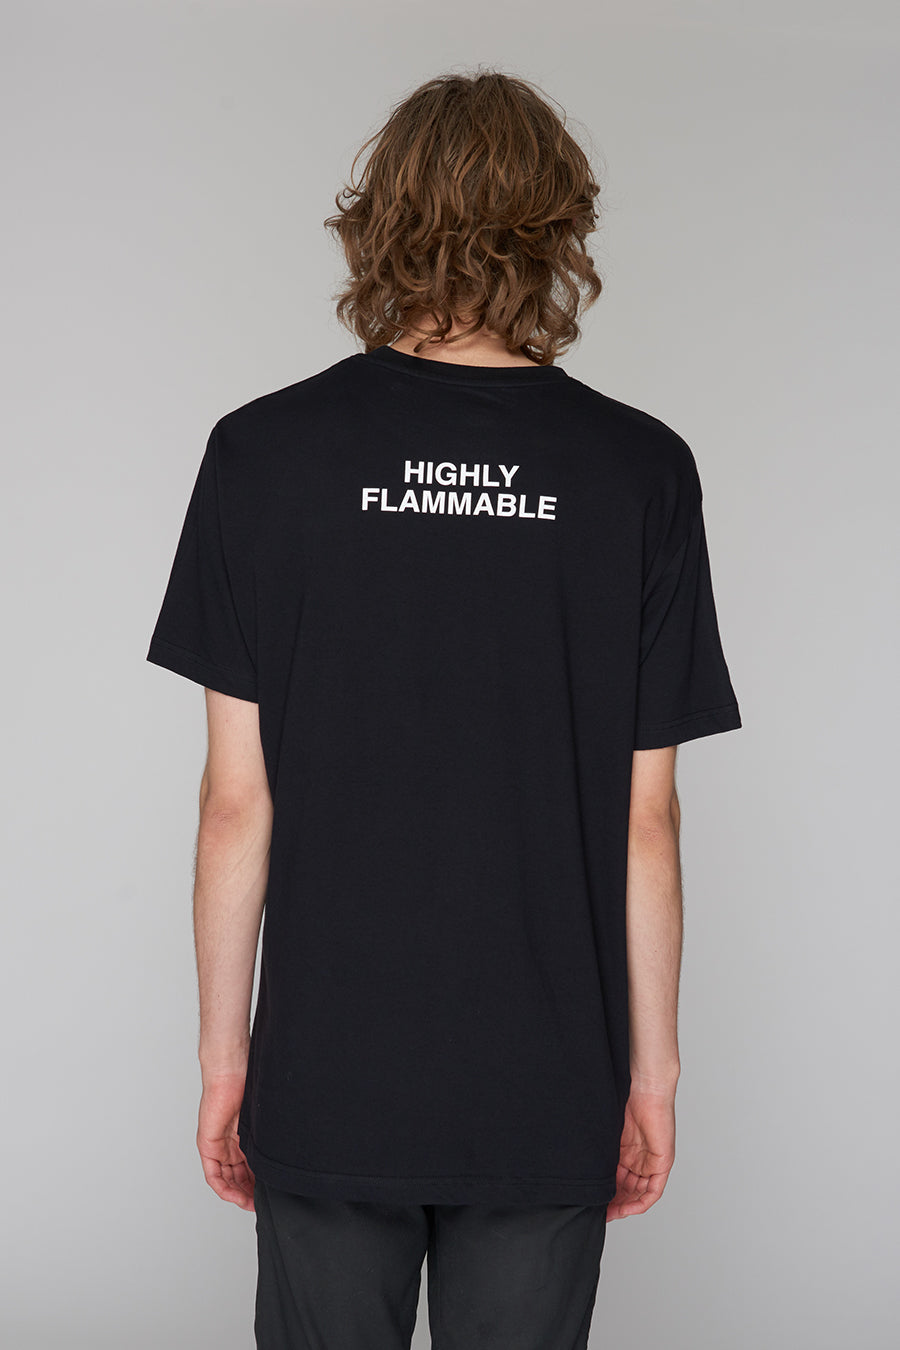 Long Clothing Highly Flammable T Black 5